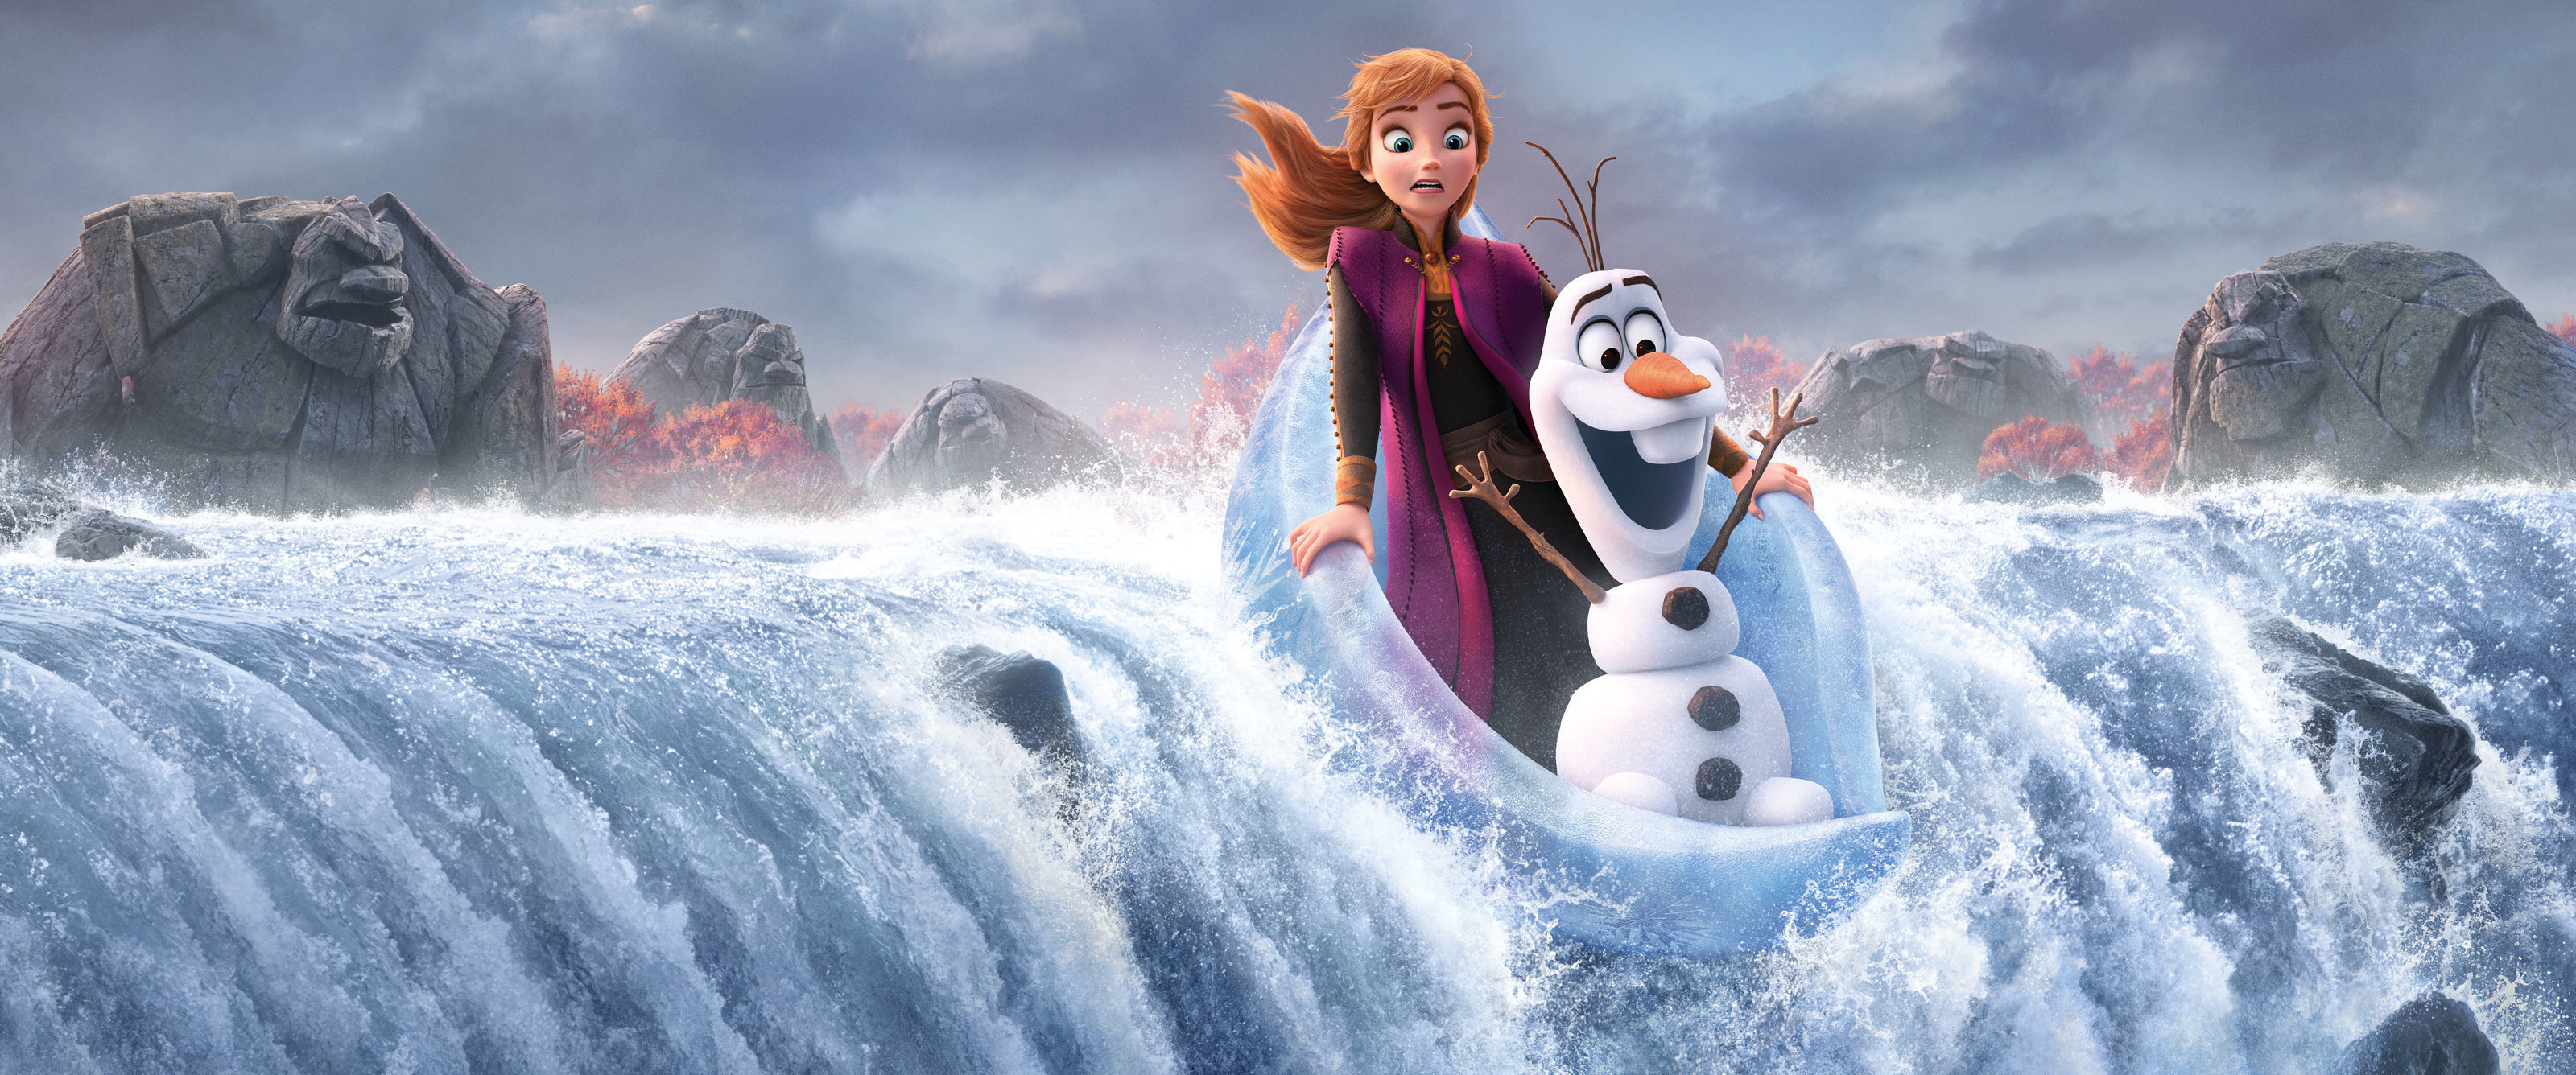 Frozen 2 Article